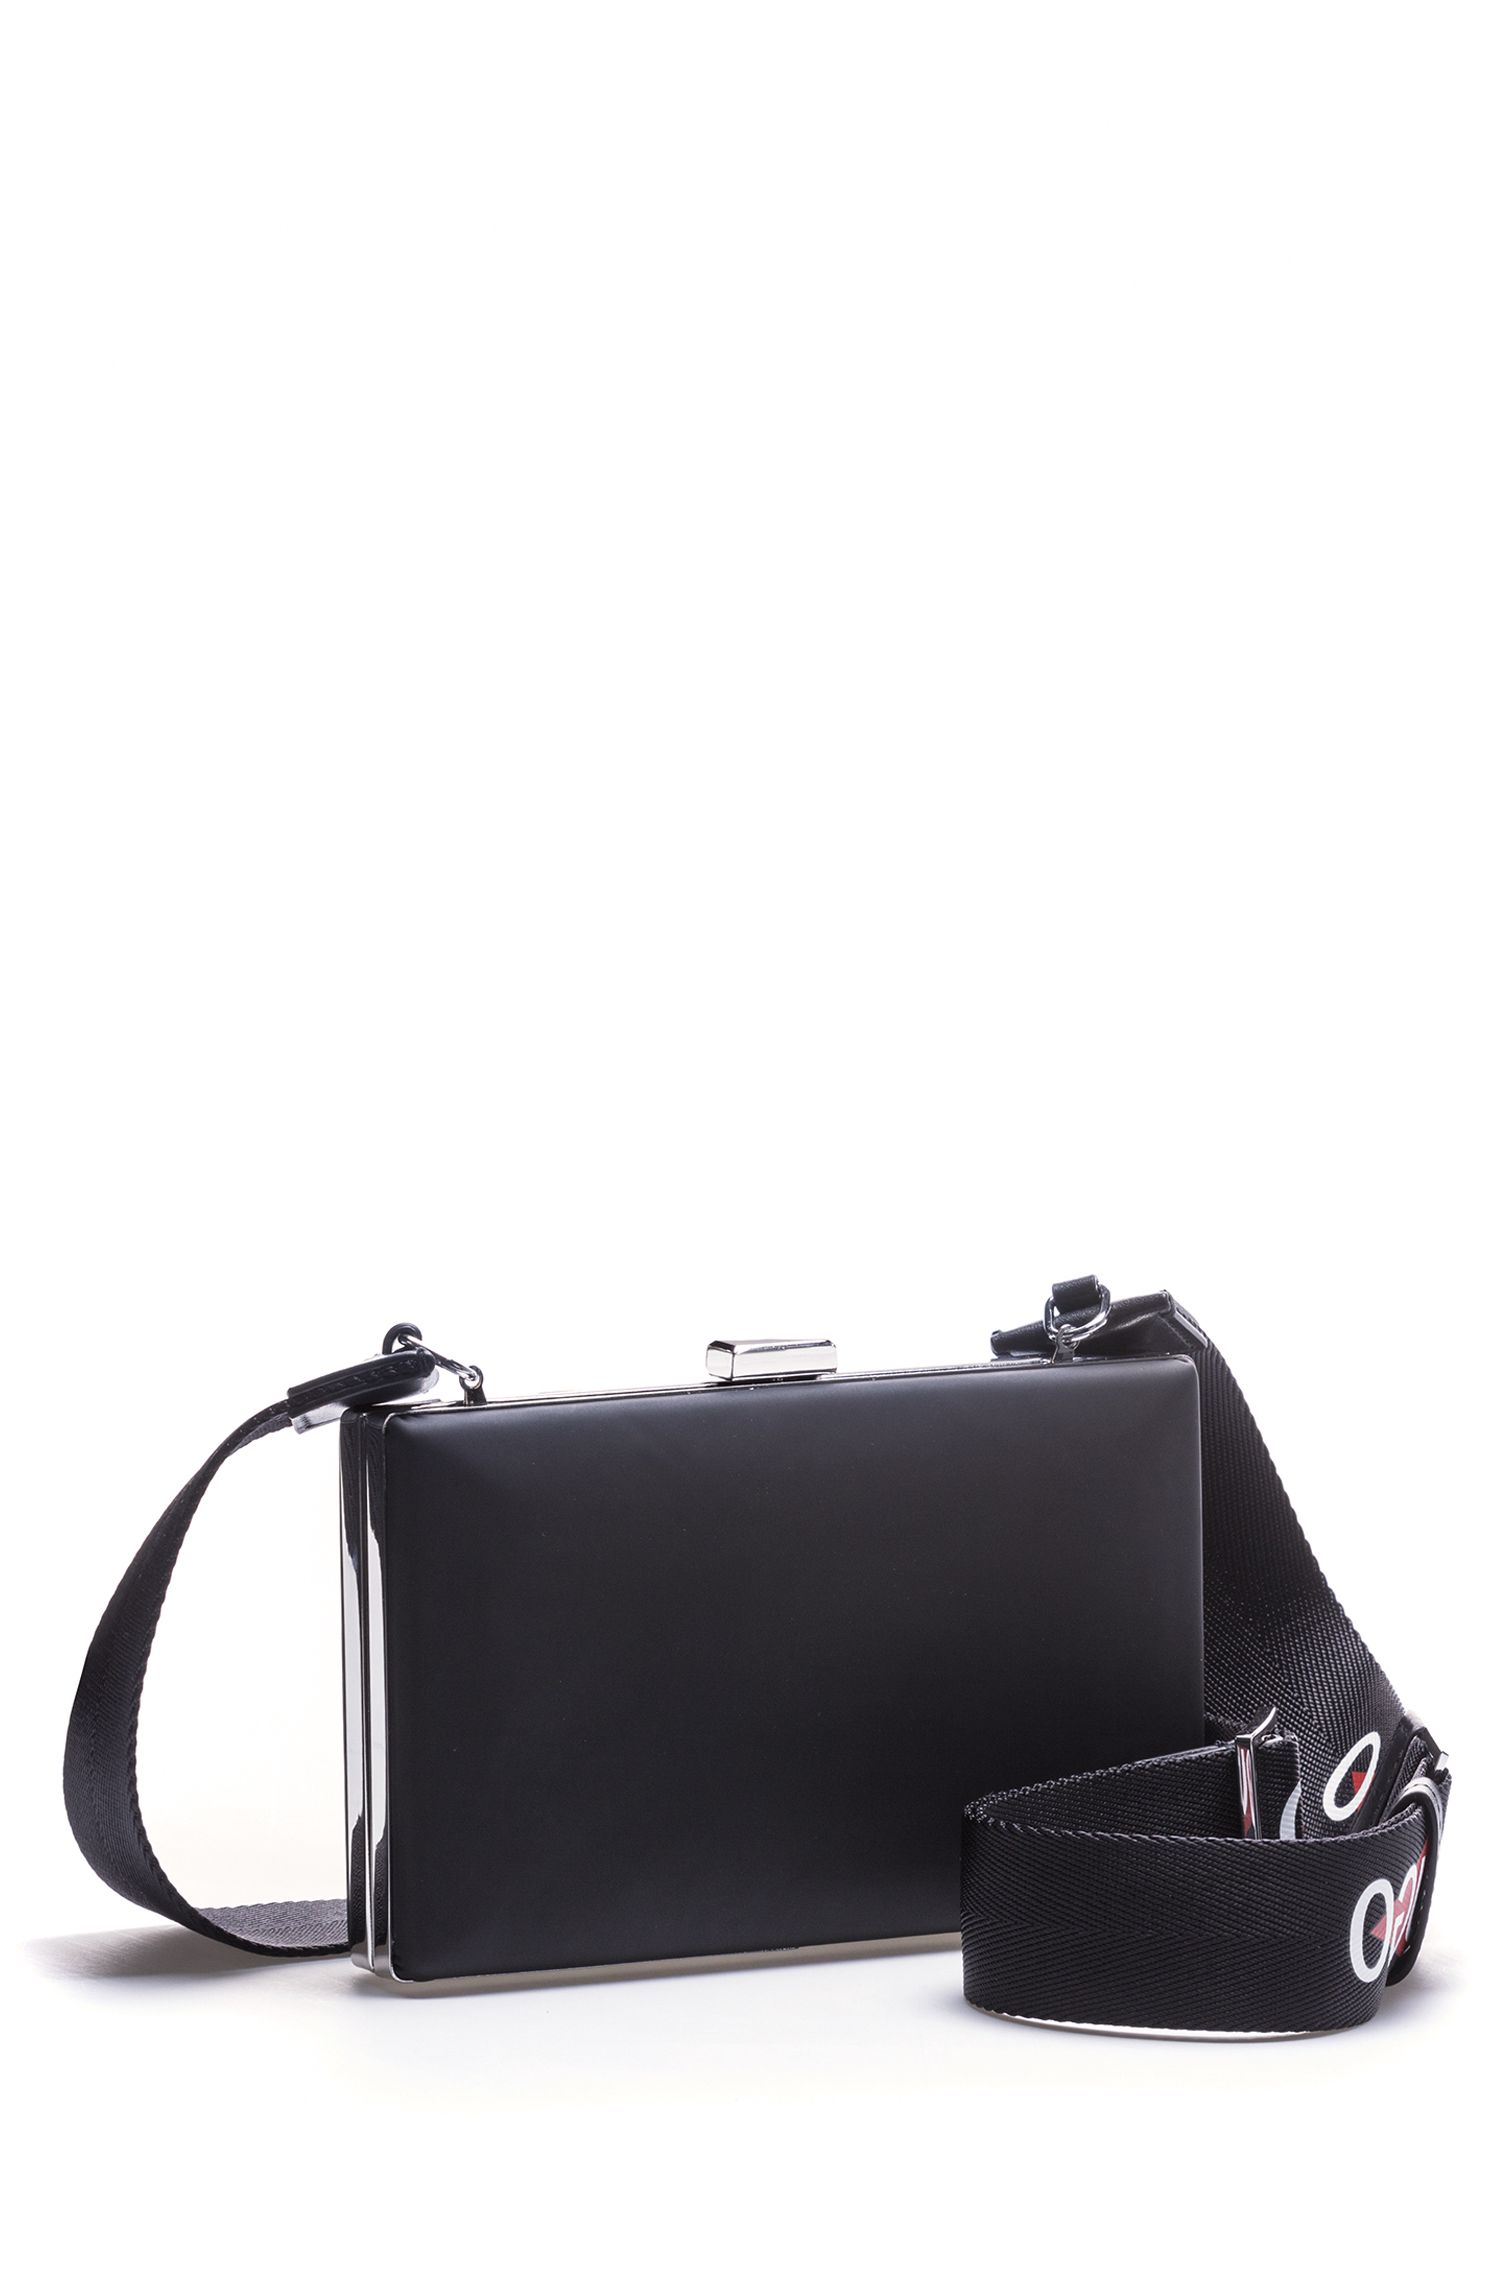 Crossbody bag in patent fabric with logo strap , Black